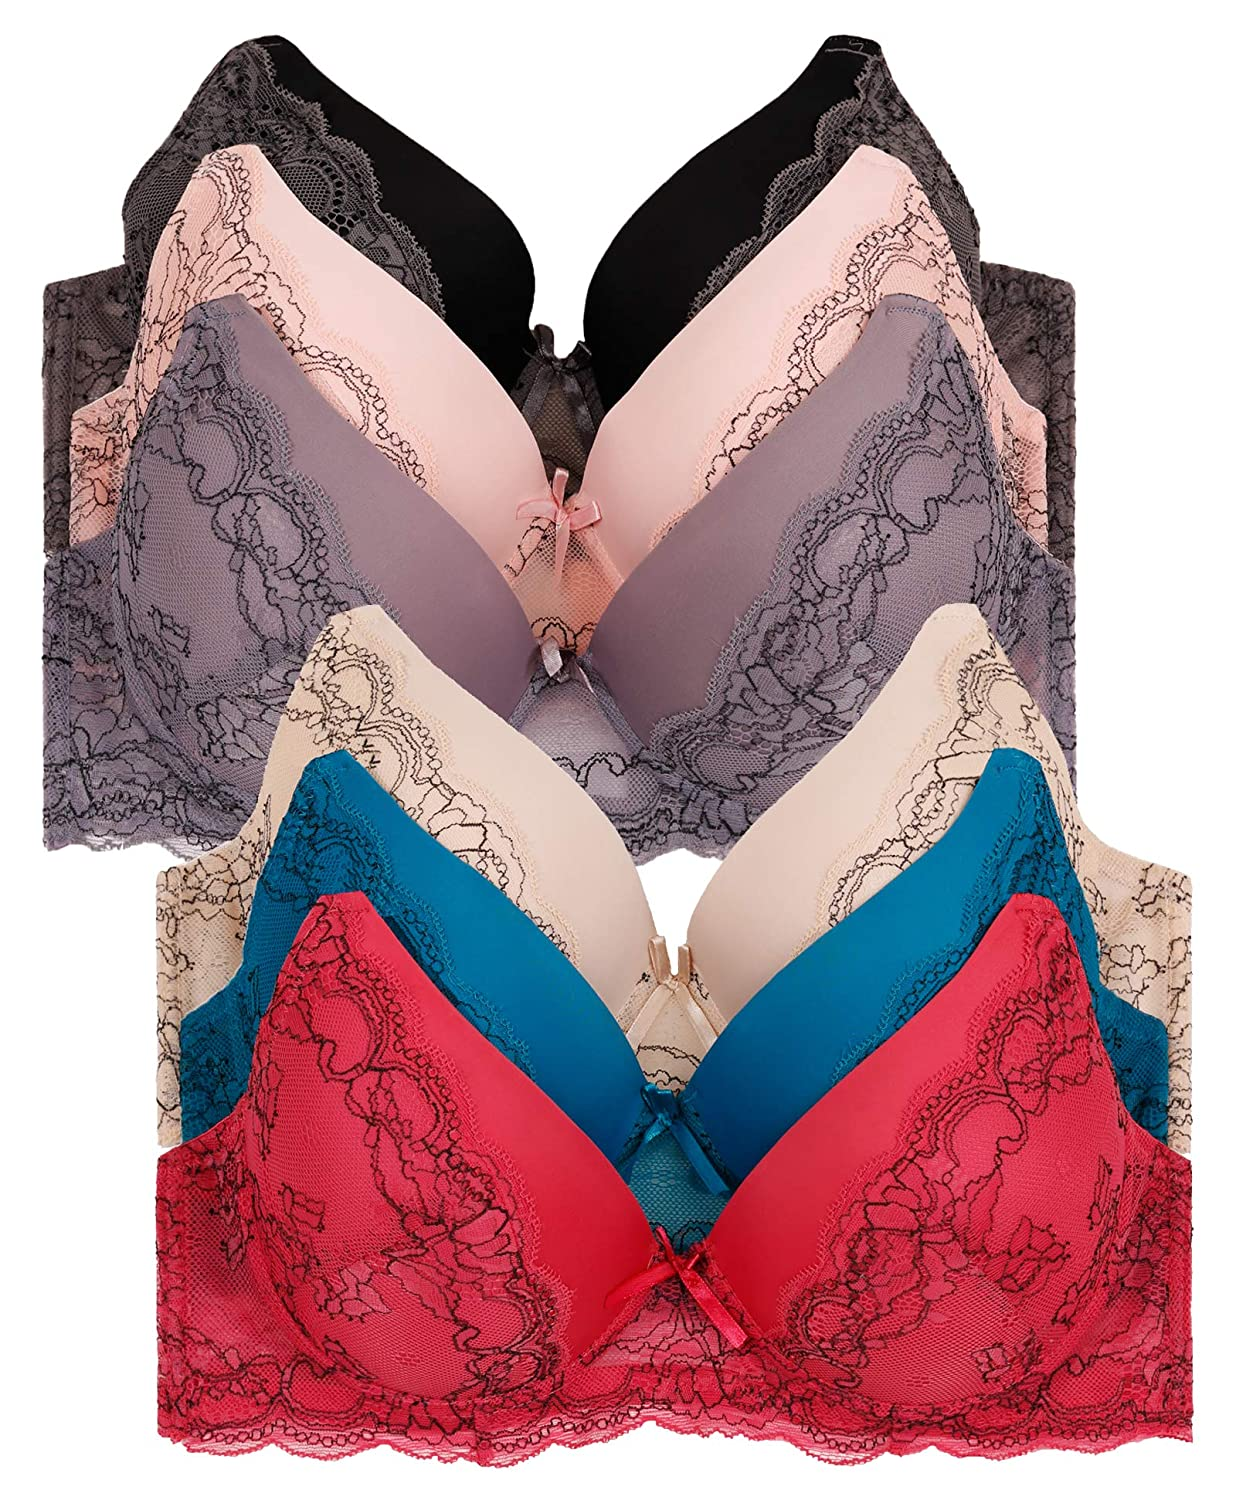 11 (3hooks) 2ND DATE Women's Laced & Plain Lace Bras (Packs of 6)  Various Styles